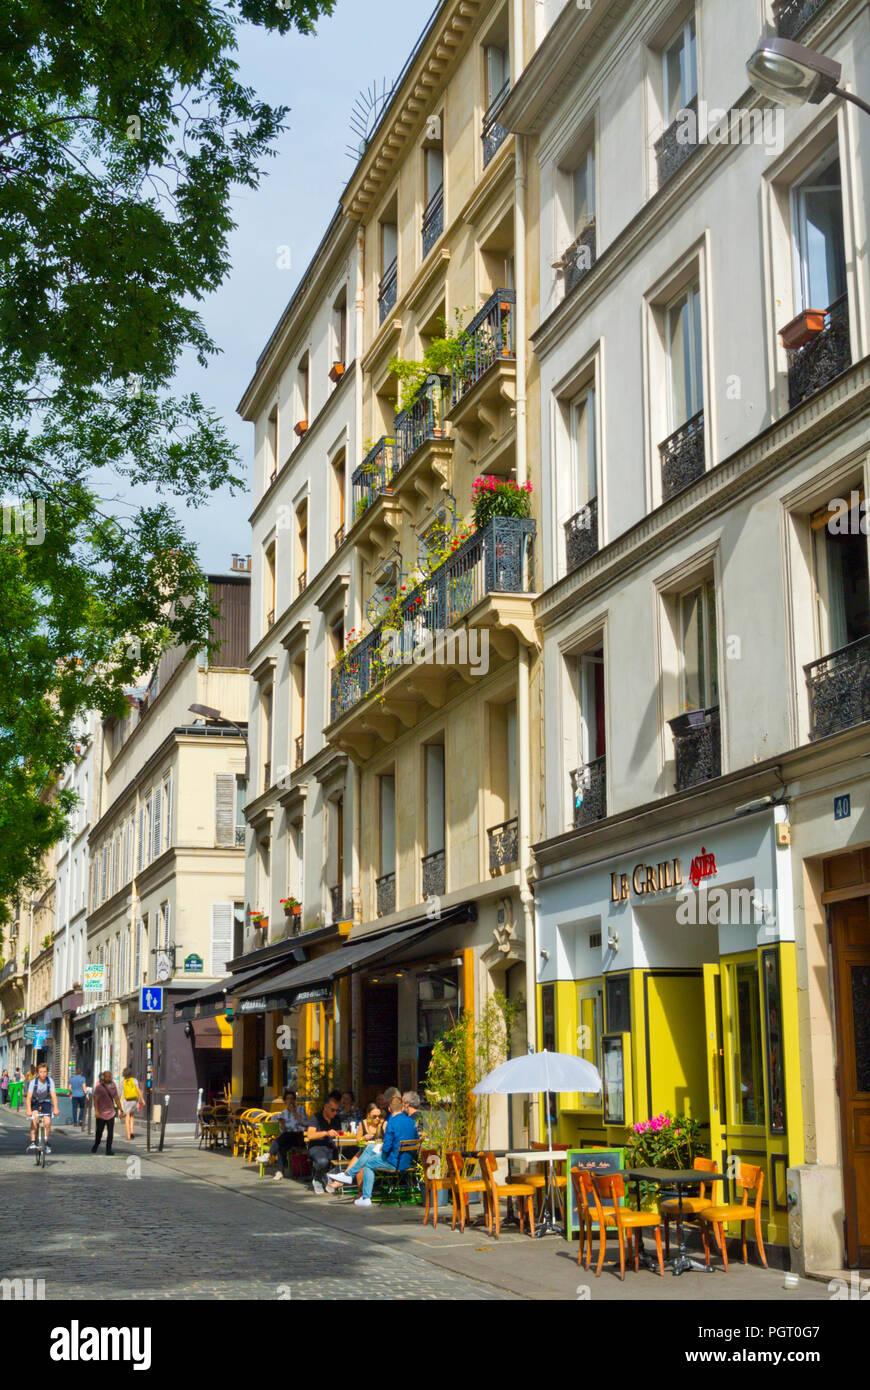 Rue Jean-Pierre Timbaud, Oberkampf, Paris, France - Stock Image